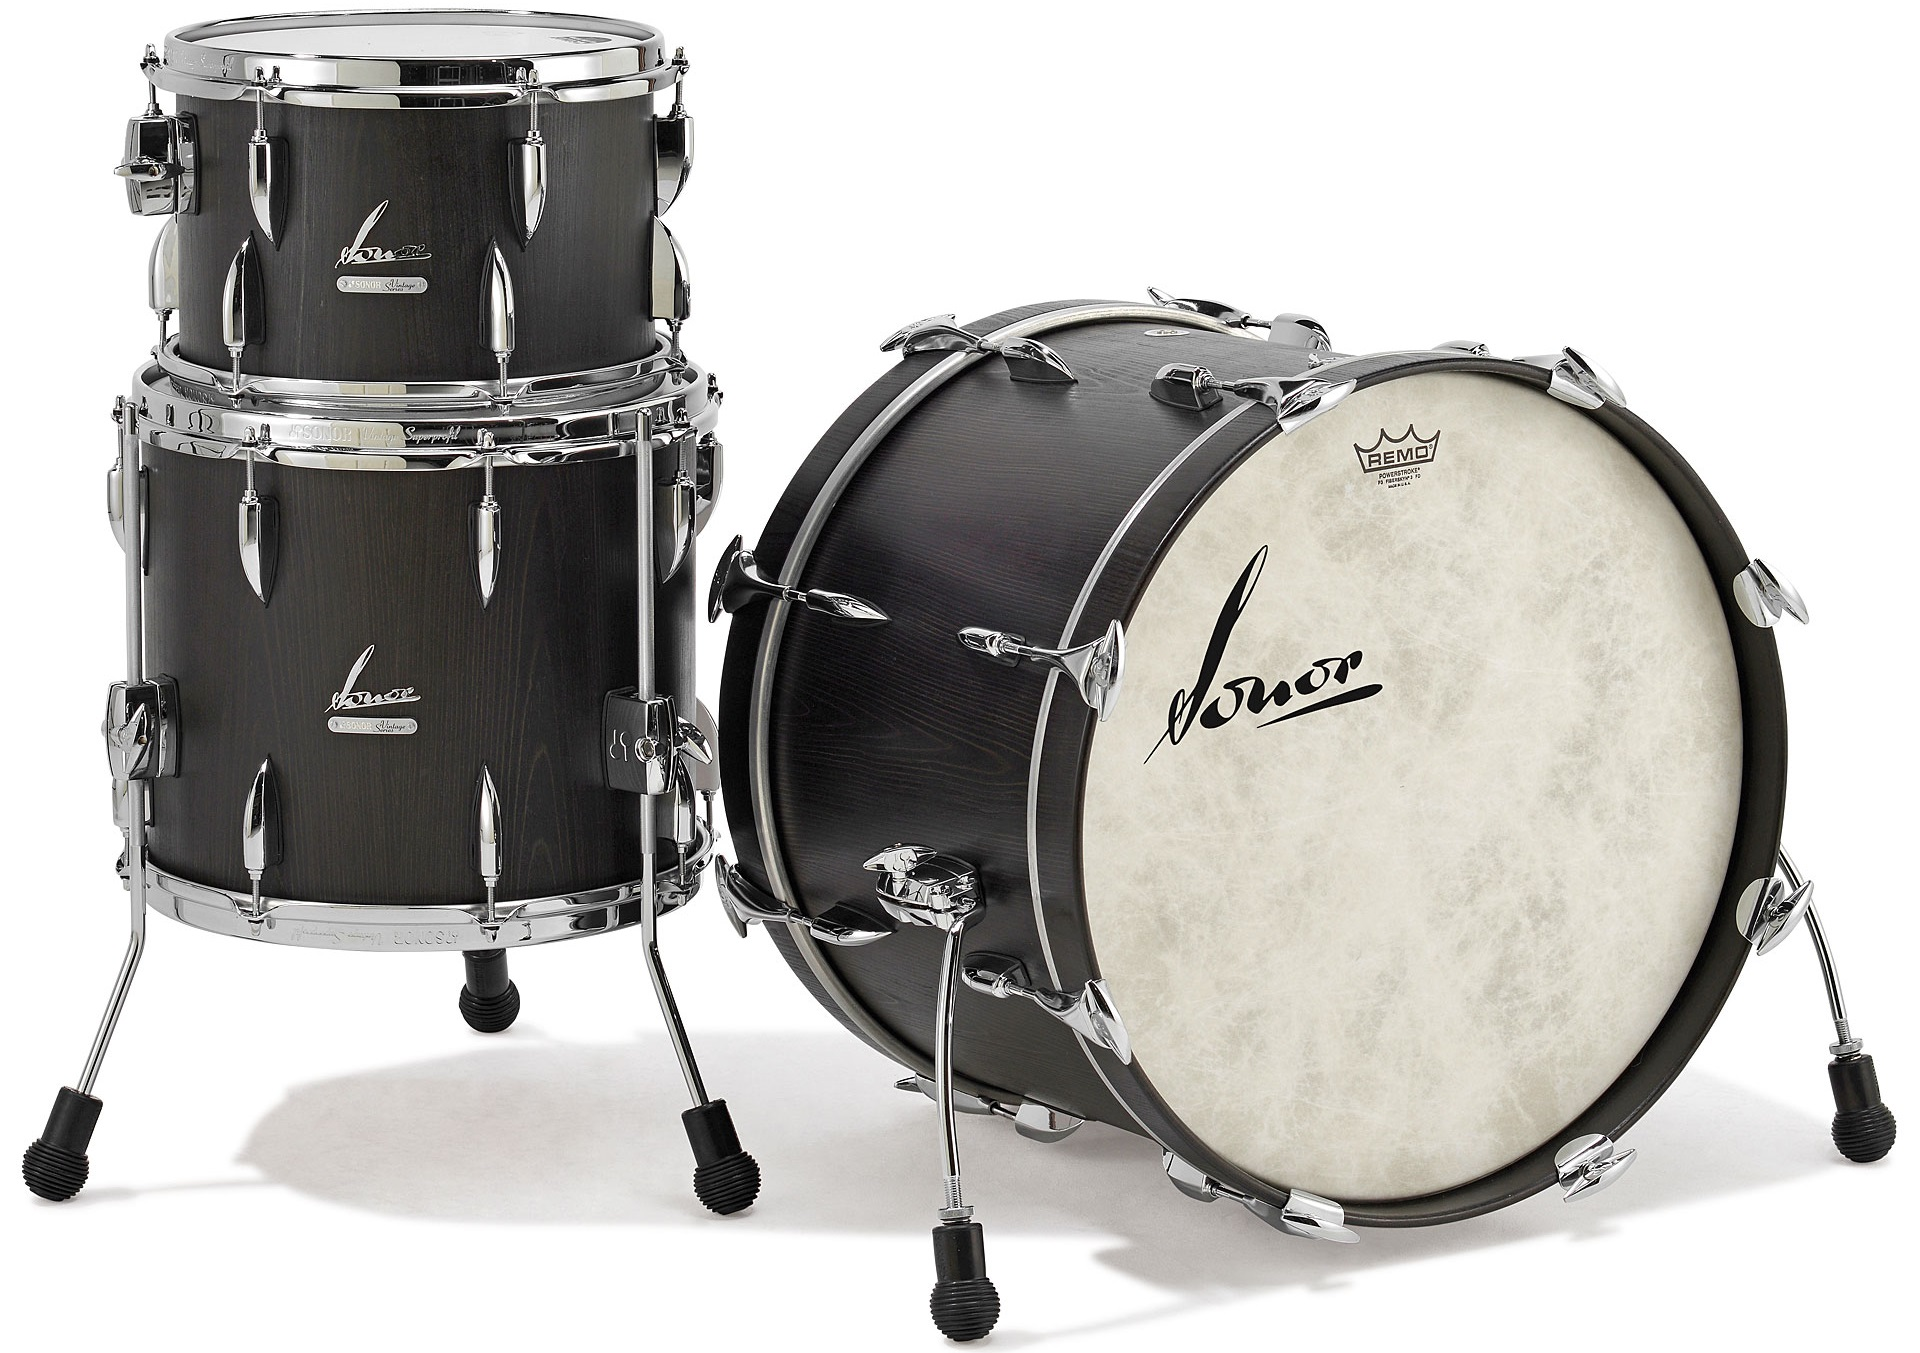 Sonor Vintage series set 1 Vintage onyx